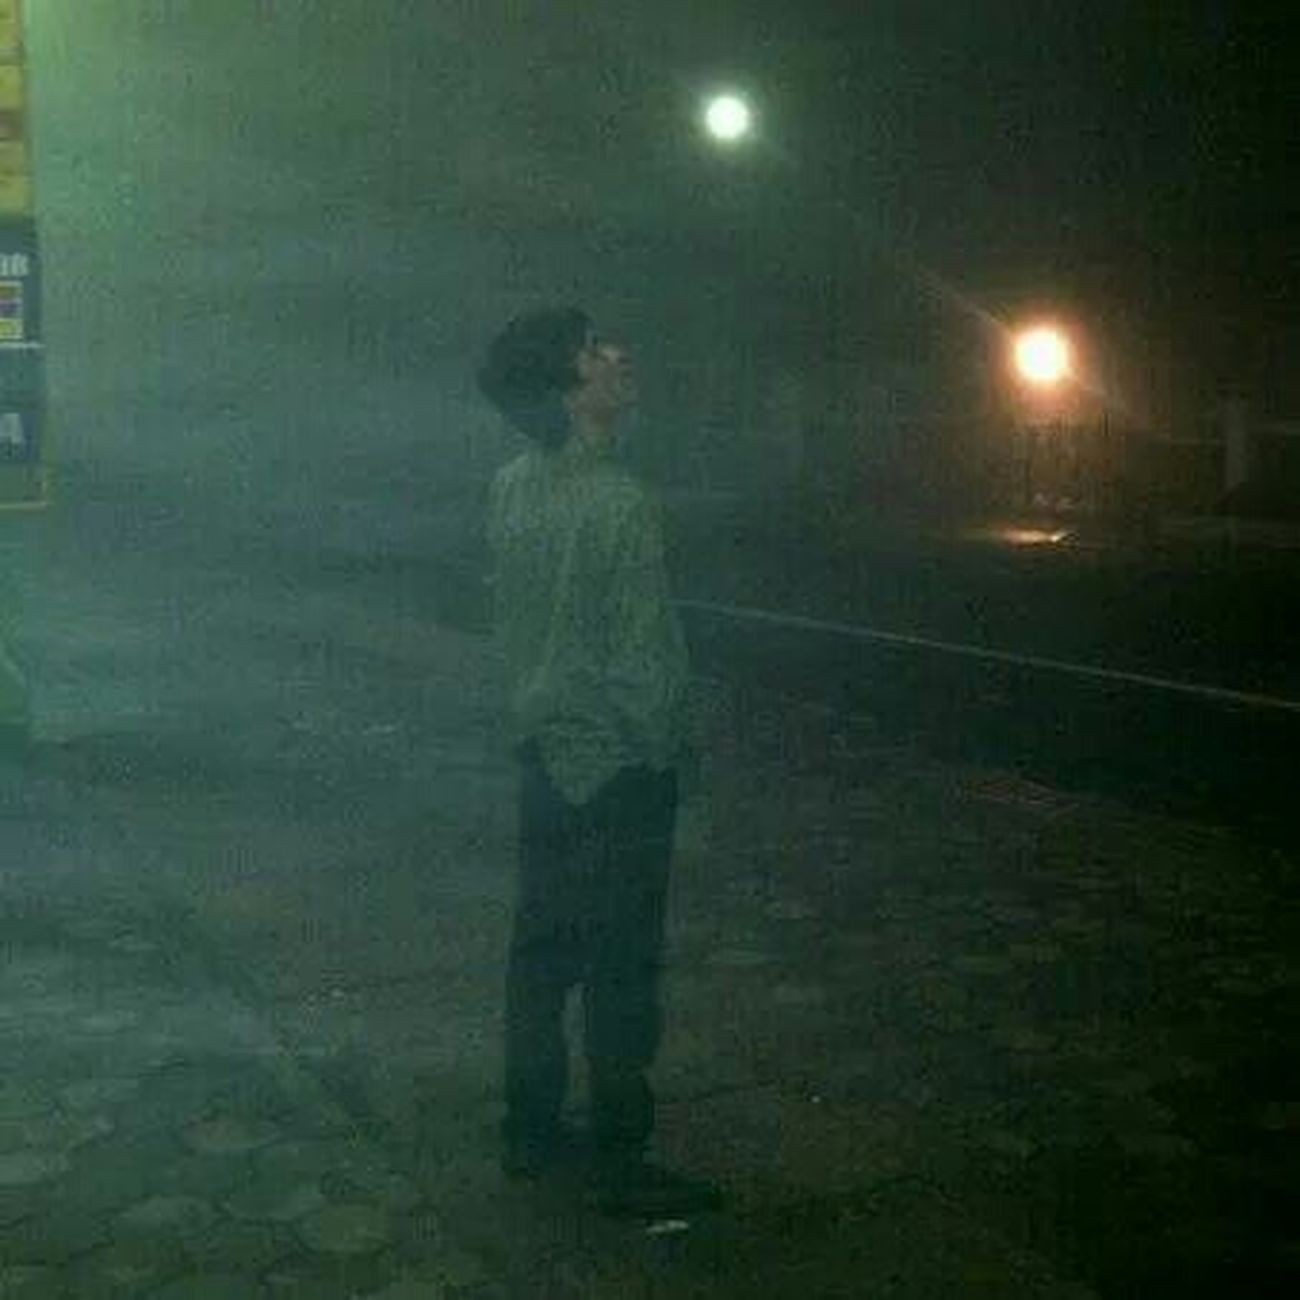 Fog Mist Silent Hill Silent Moment Lonely Nightphotography No Edit/no Filter Lembang Bandung Bandung, West Java